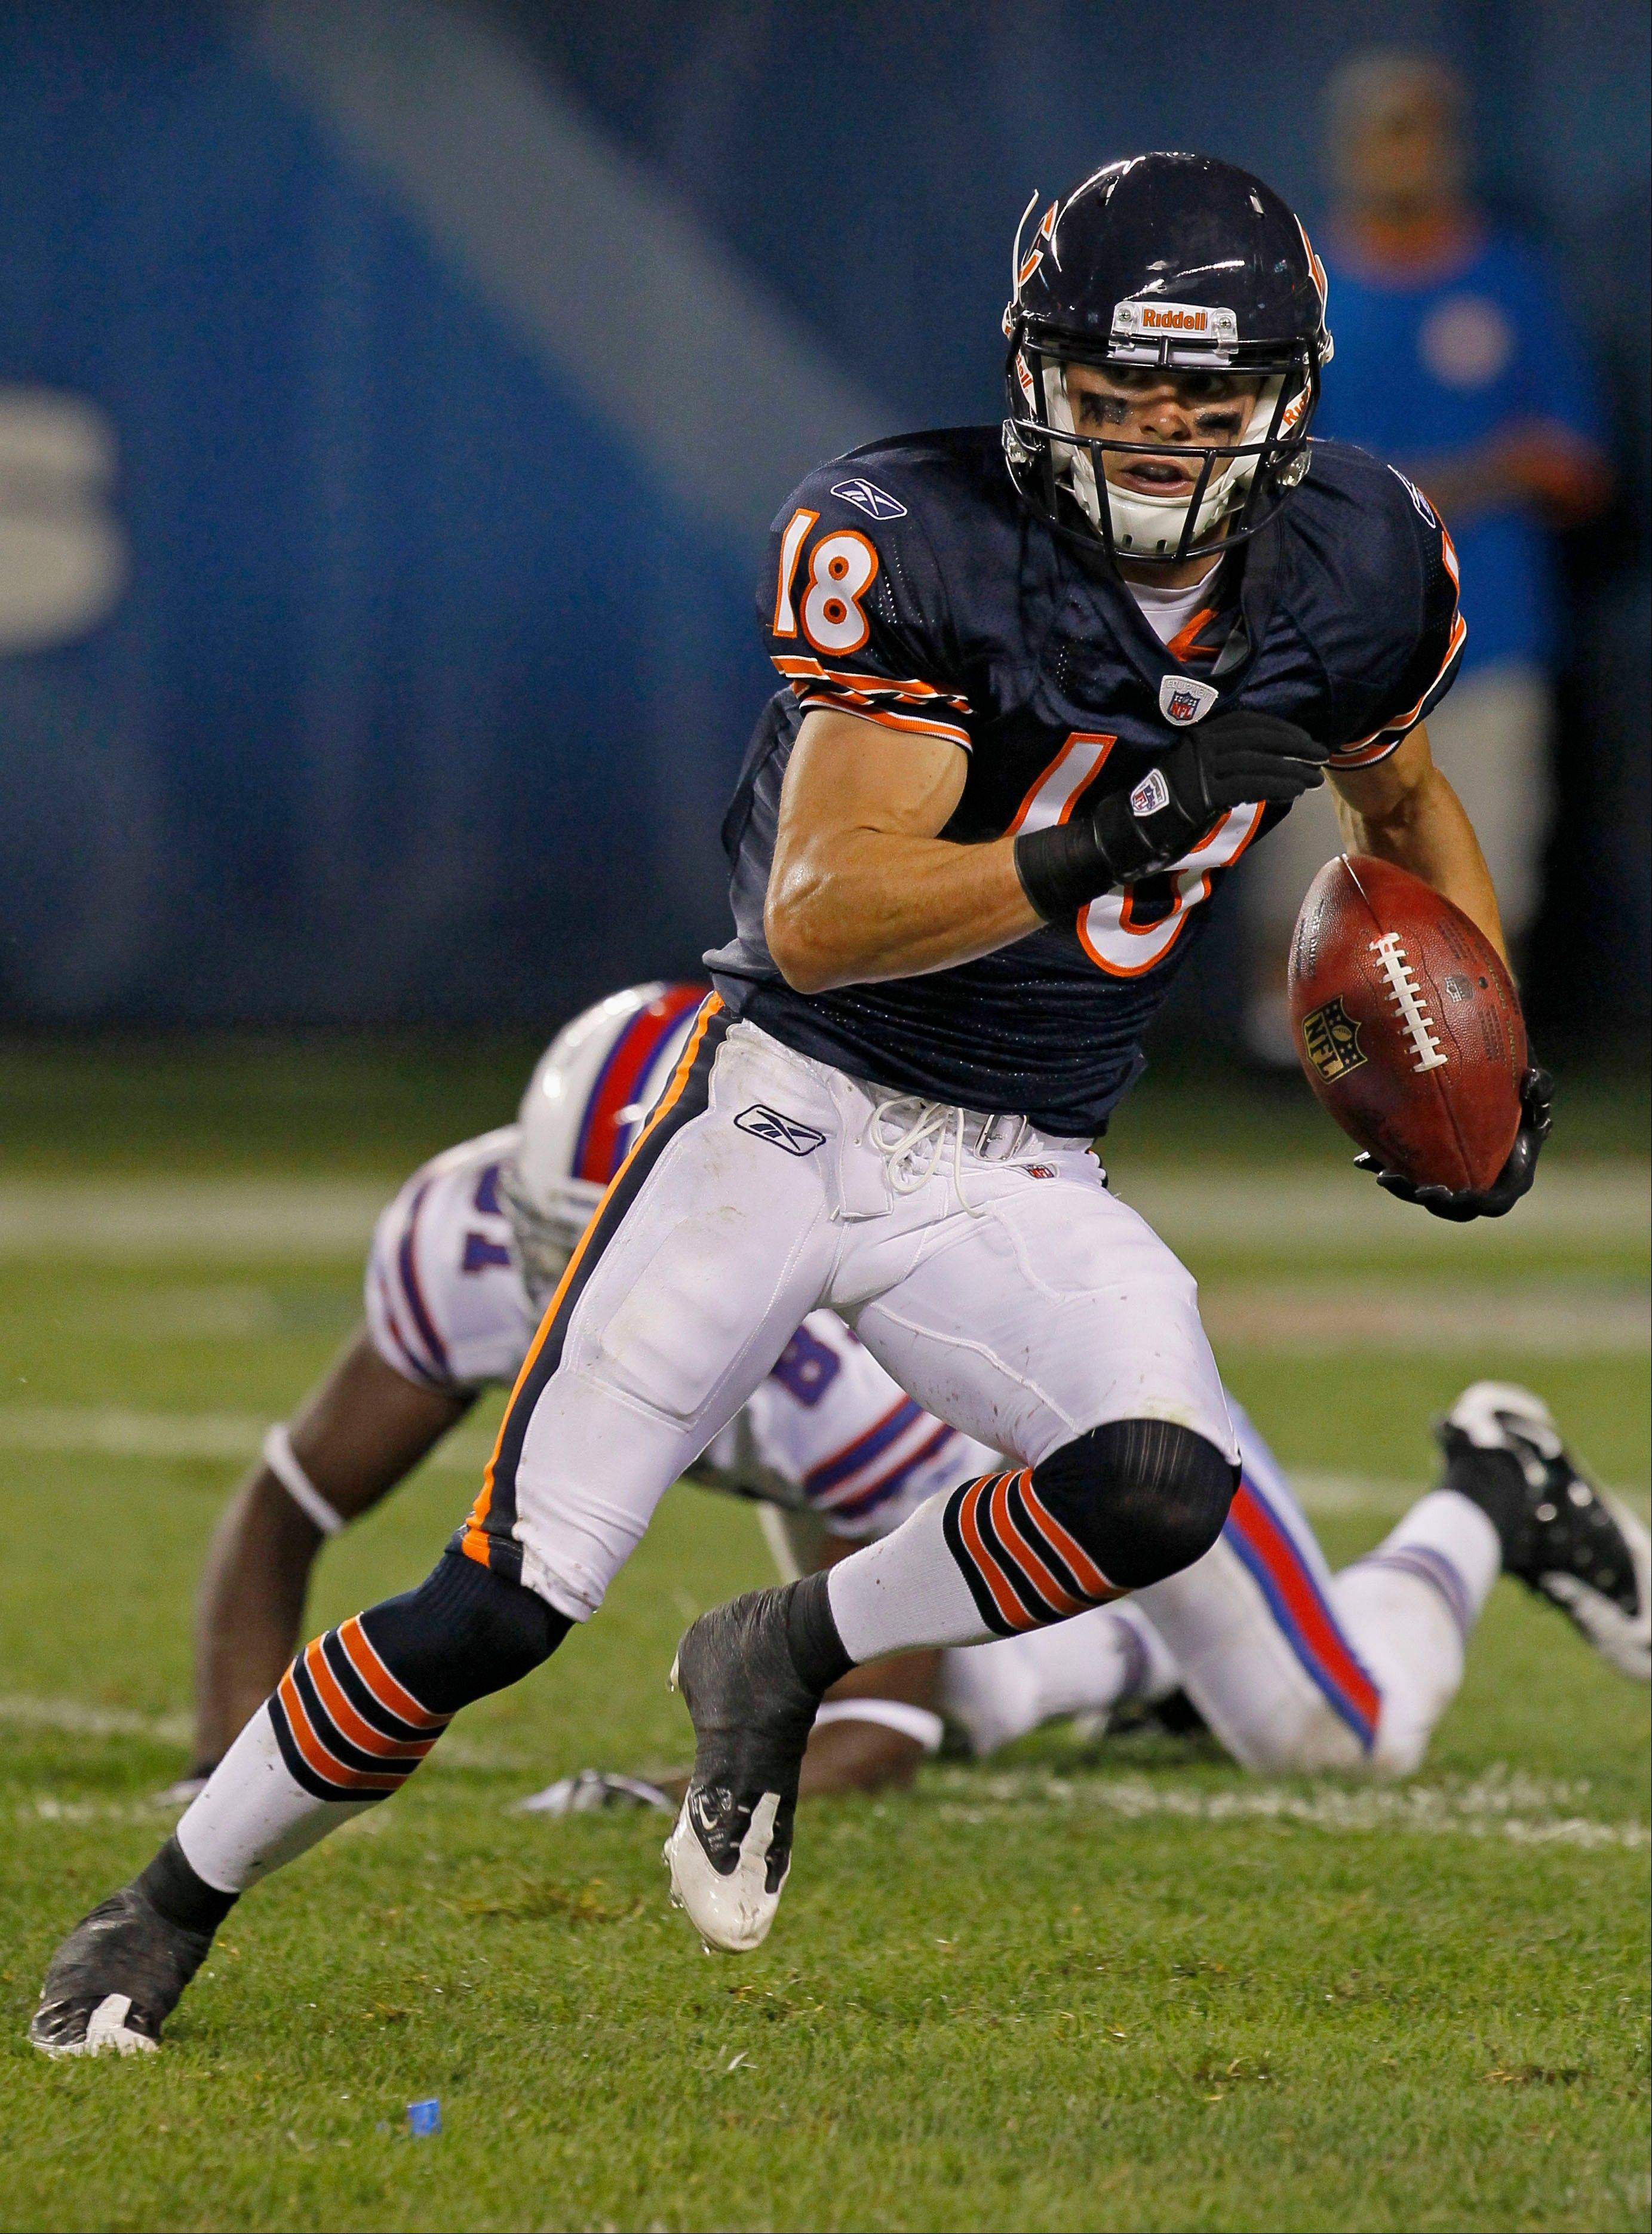 Bears' wide receivers give Martz hope for increased scoring